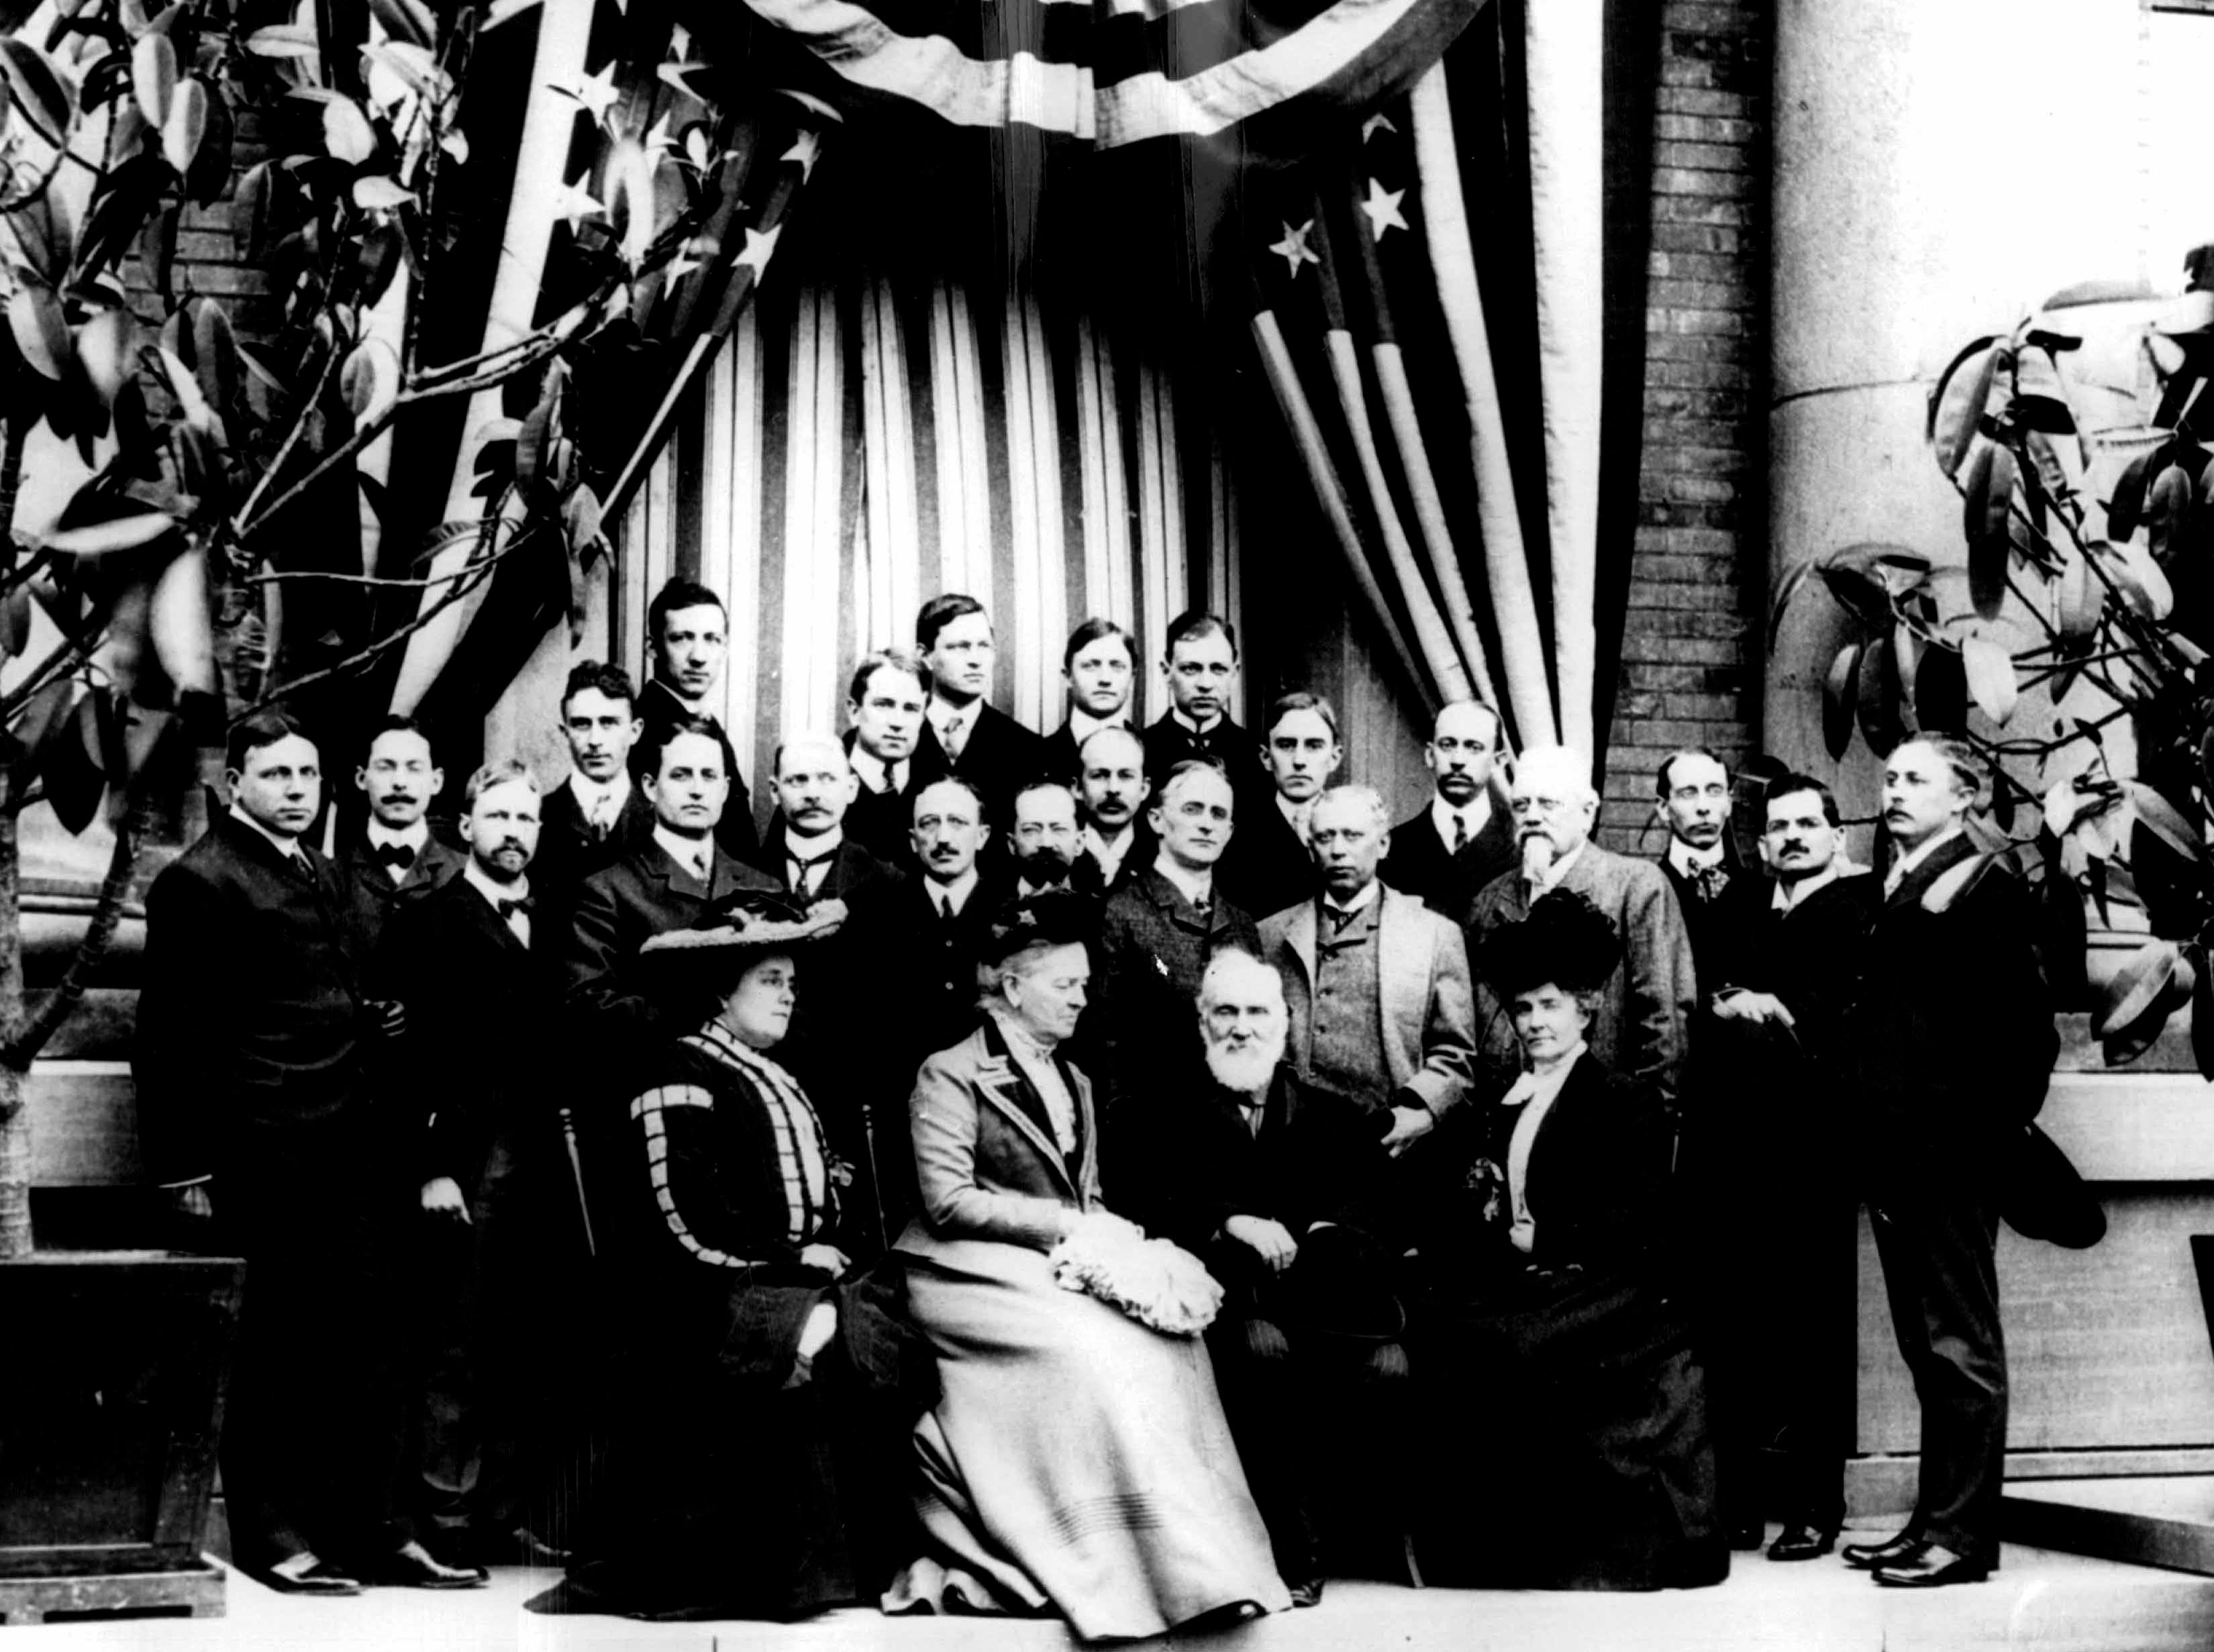 This photo was taken at Kodak Park on April 20, 1902, when the British scientist William Thomson, Baron Kelvin, visited Rochester. Seated are Mrs. George Strong Carter of Honolulu (Helen), Lady Kelvin, Lord Kelvin and Mrs. Charles S. Abbott. Henry A. Strong, the first president of the Eastman Kodak Co. and Mrs. Carter's father, is behind Mrs. Abbott, and Kodak founder George Eastman is behind Lord Kelvin.